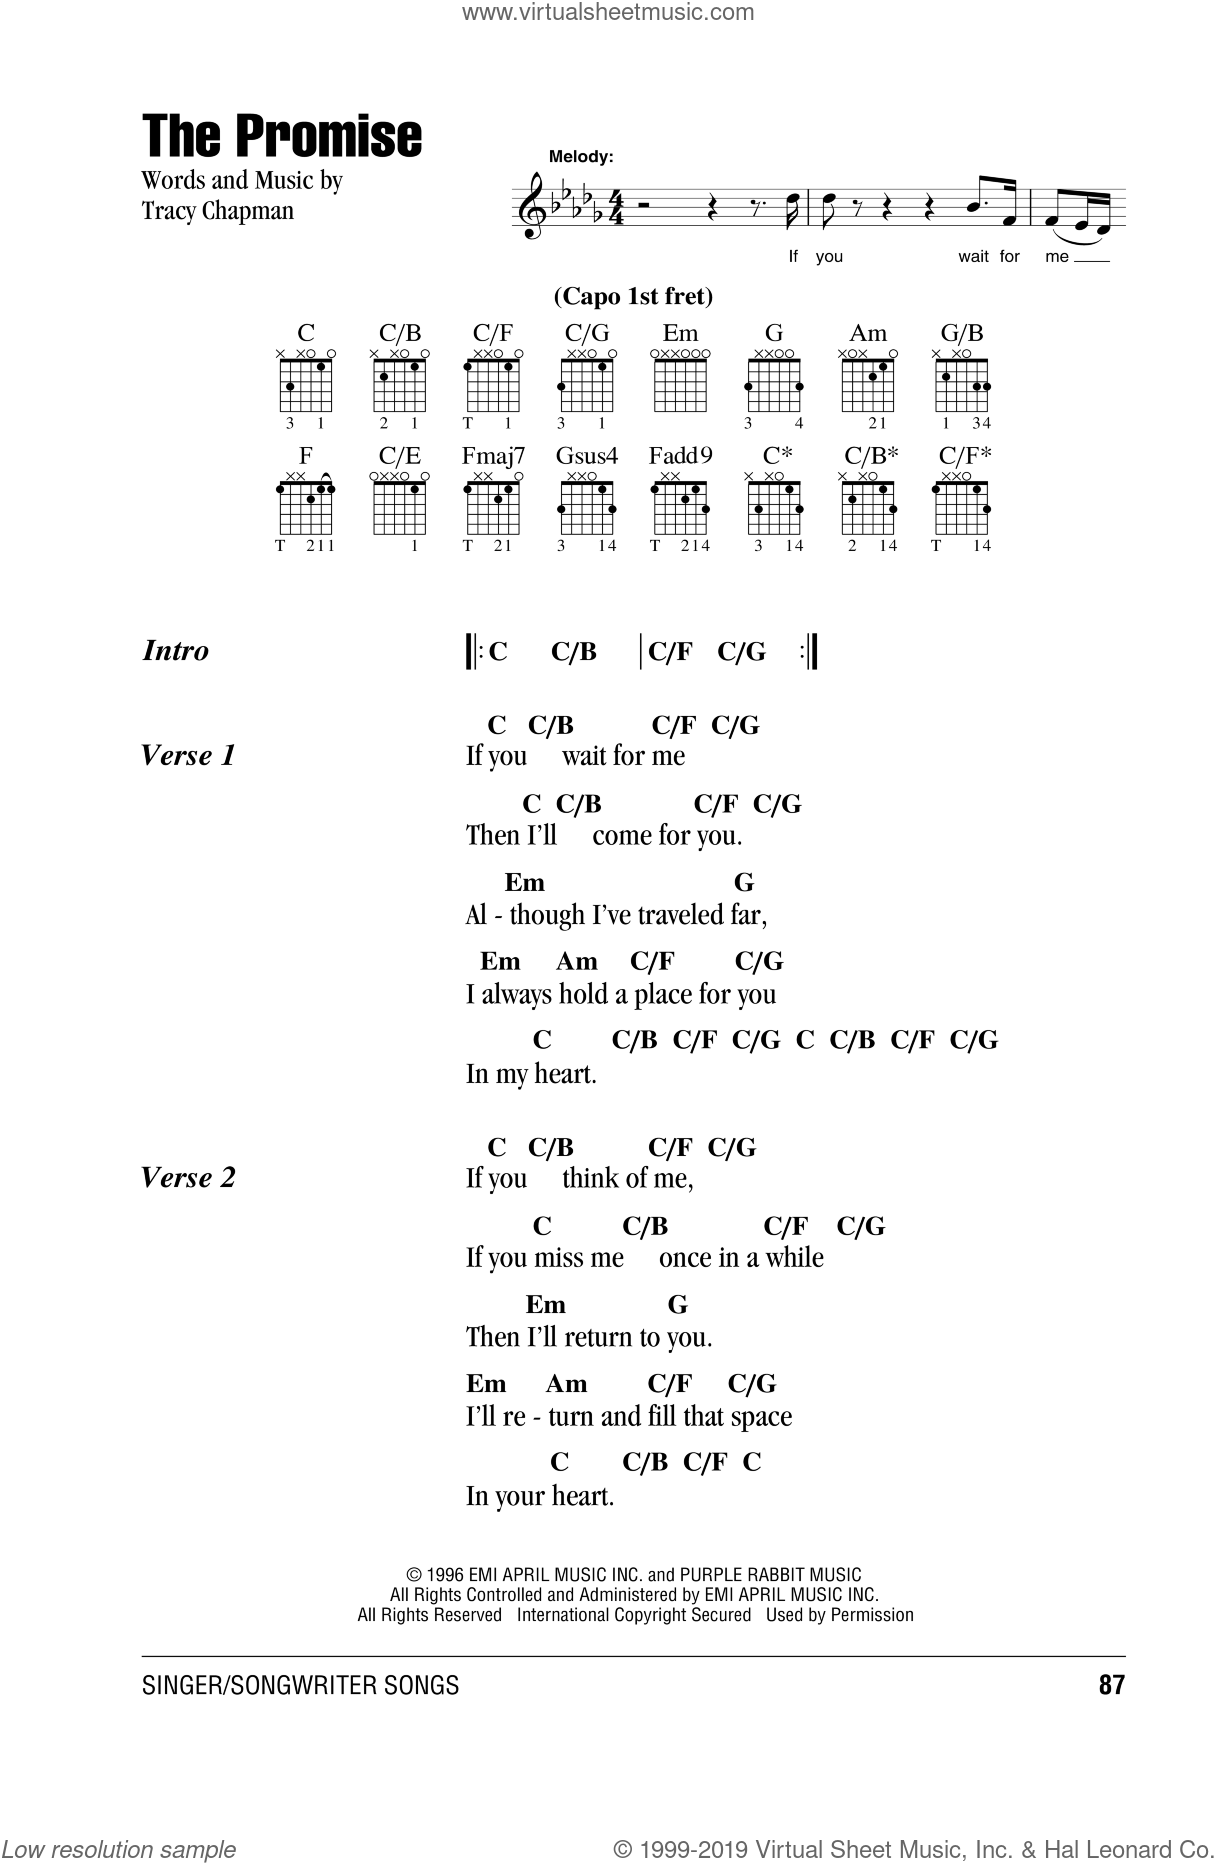 The Promise sheet music for guitar (chords, lyrics, melody) by Tracy Chapman